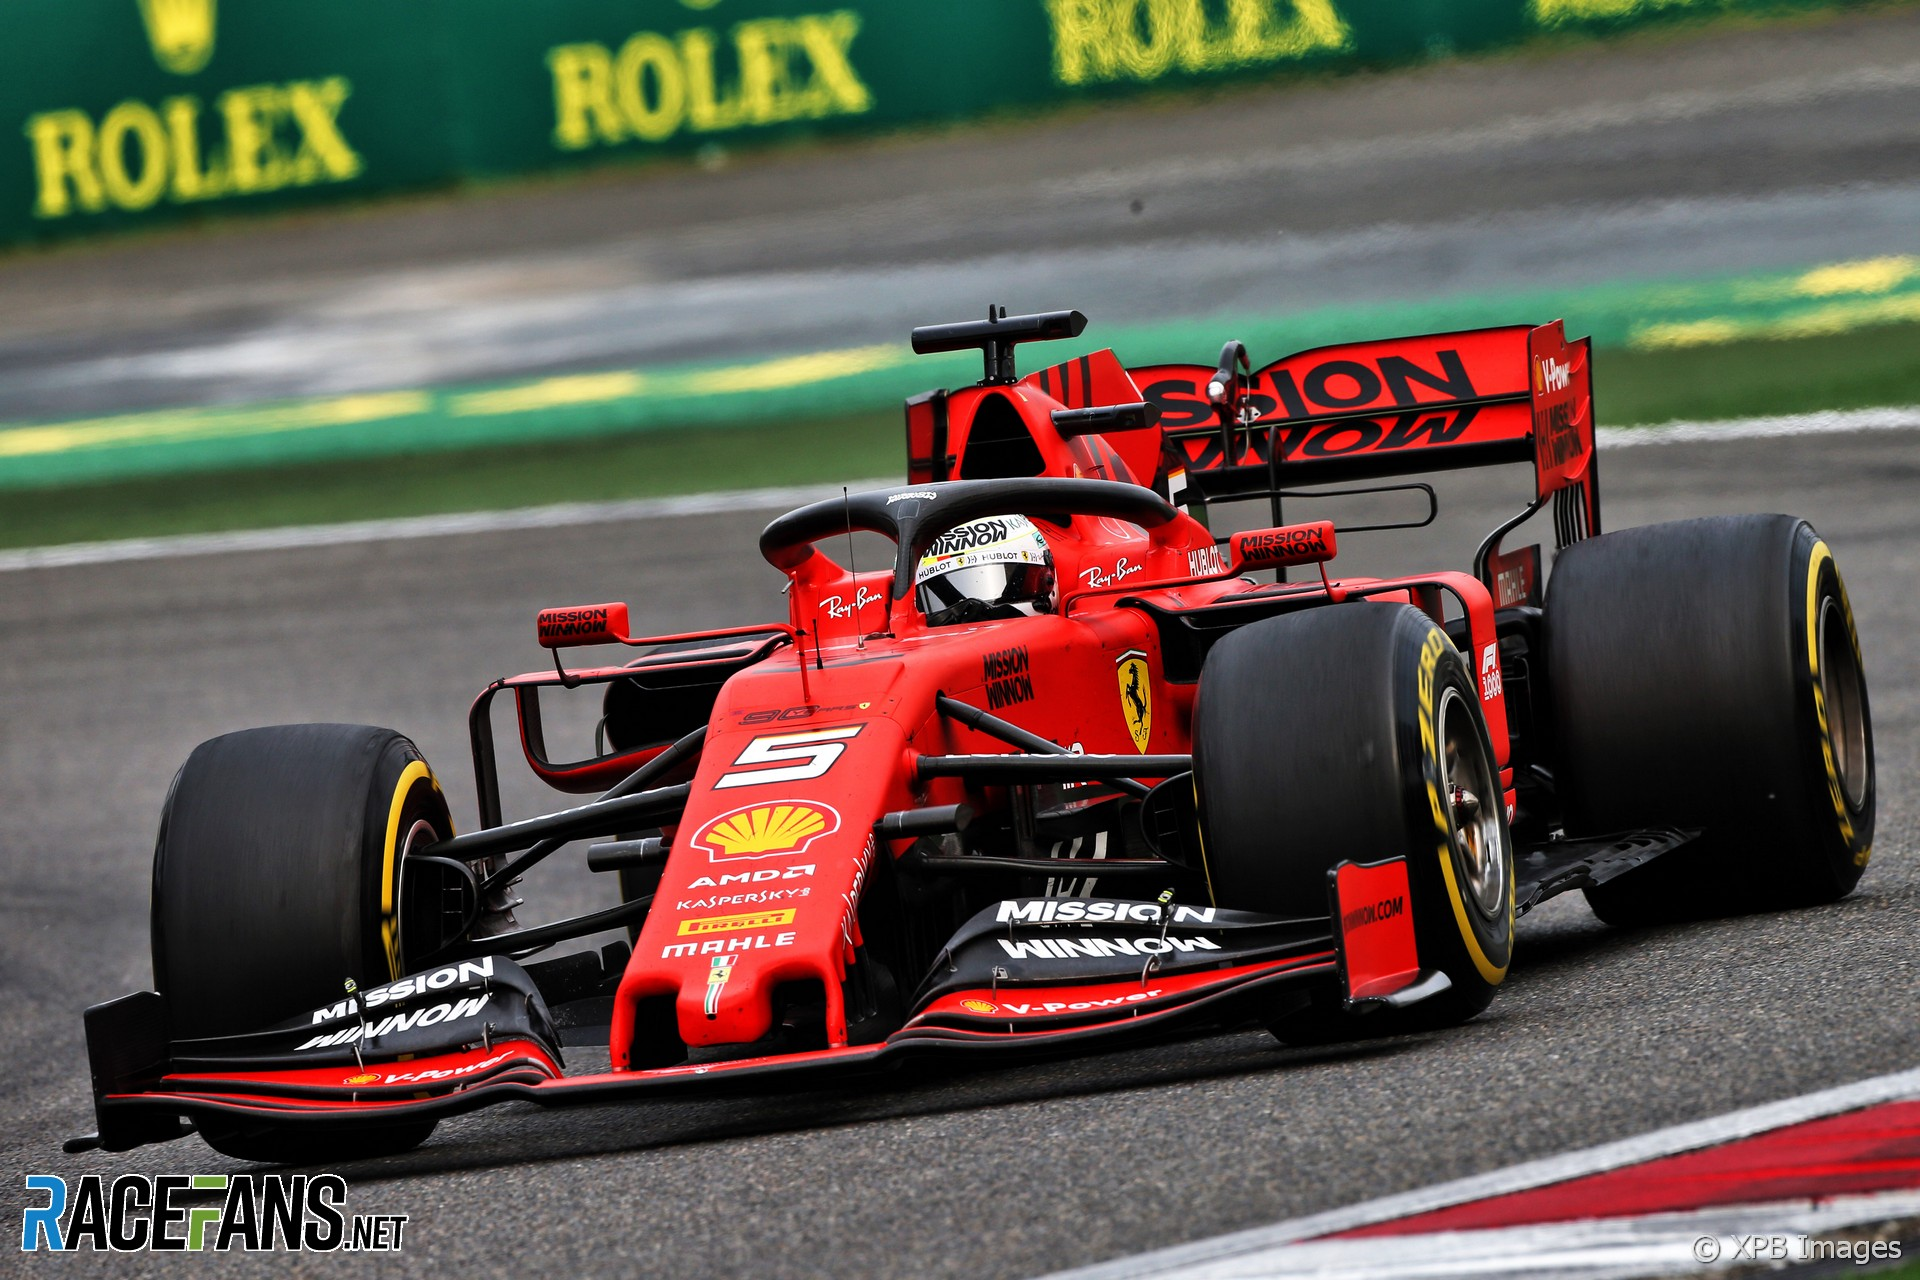 Surprising Ferrari F1 Team Doubt Baku Speed Advantage Over Mercedes Racefans Geral Blikvitt Wiring Digital Resources Geralblikvittorg